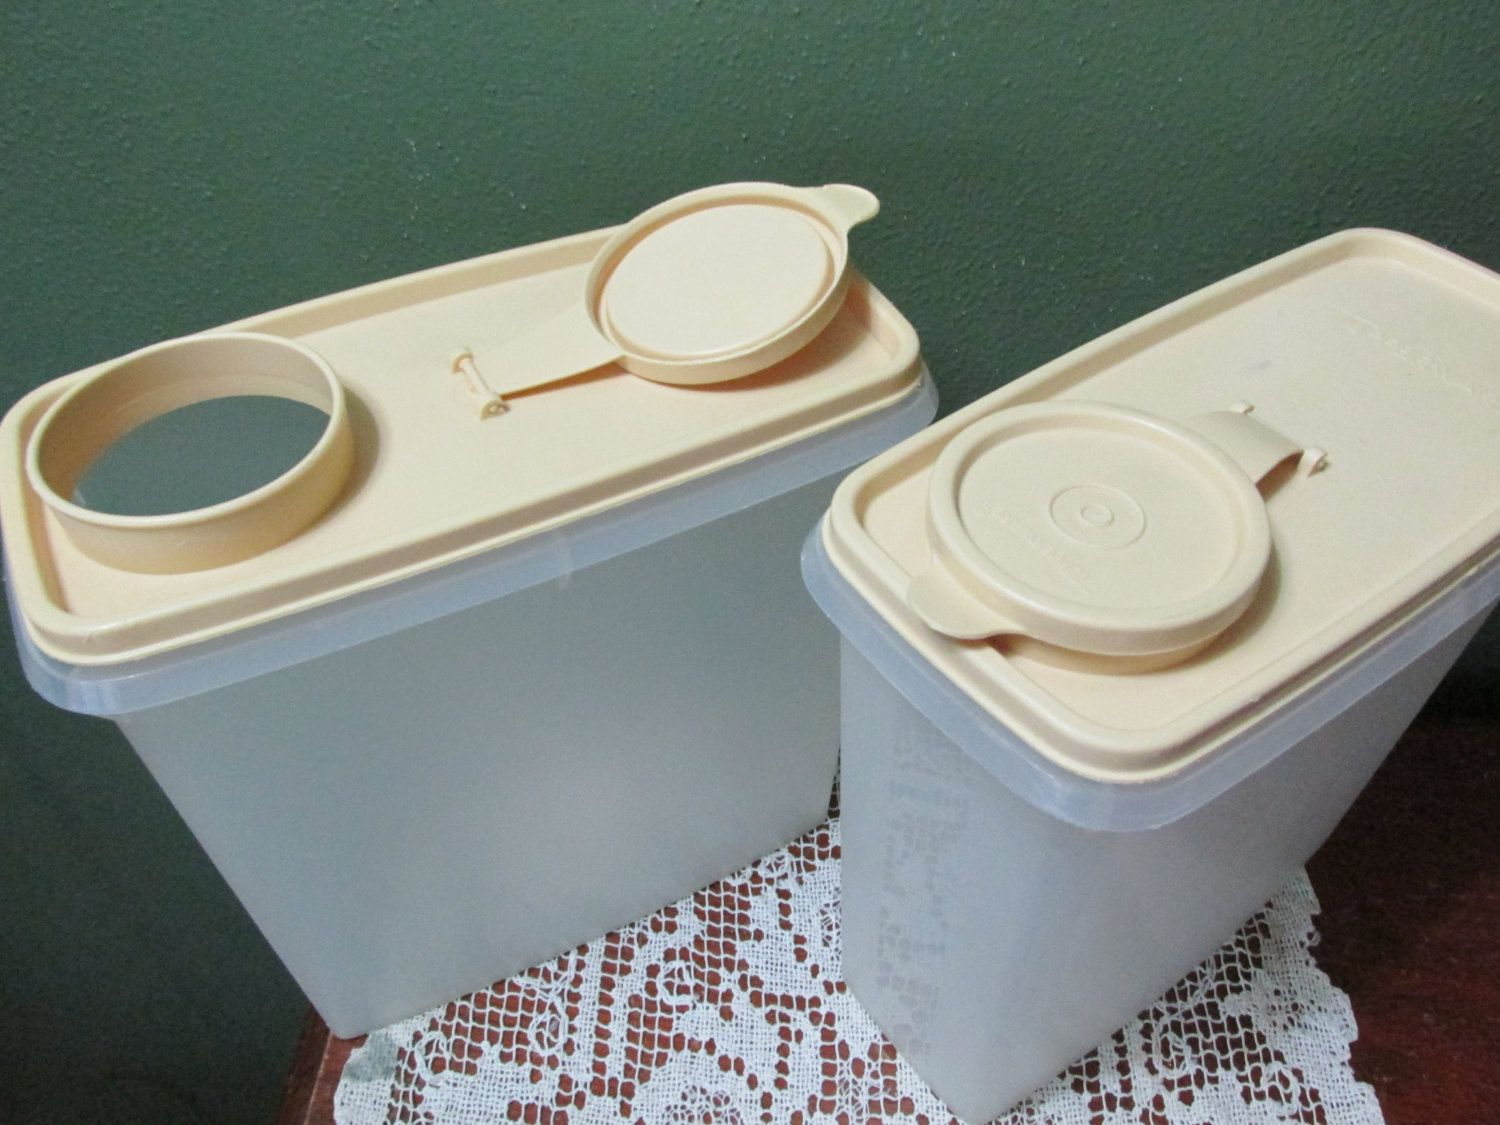 tupperware cereal keepers 2 with beige lids by luruuniques on etsy, Hause deko